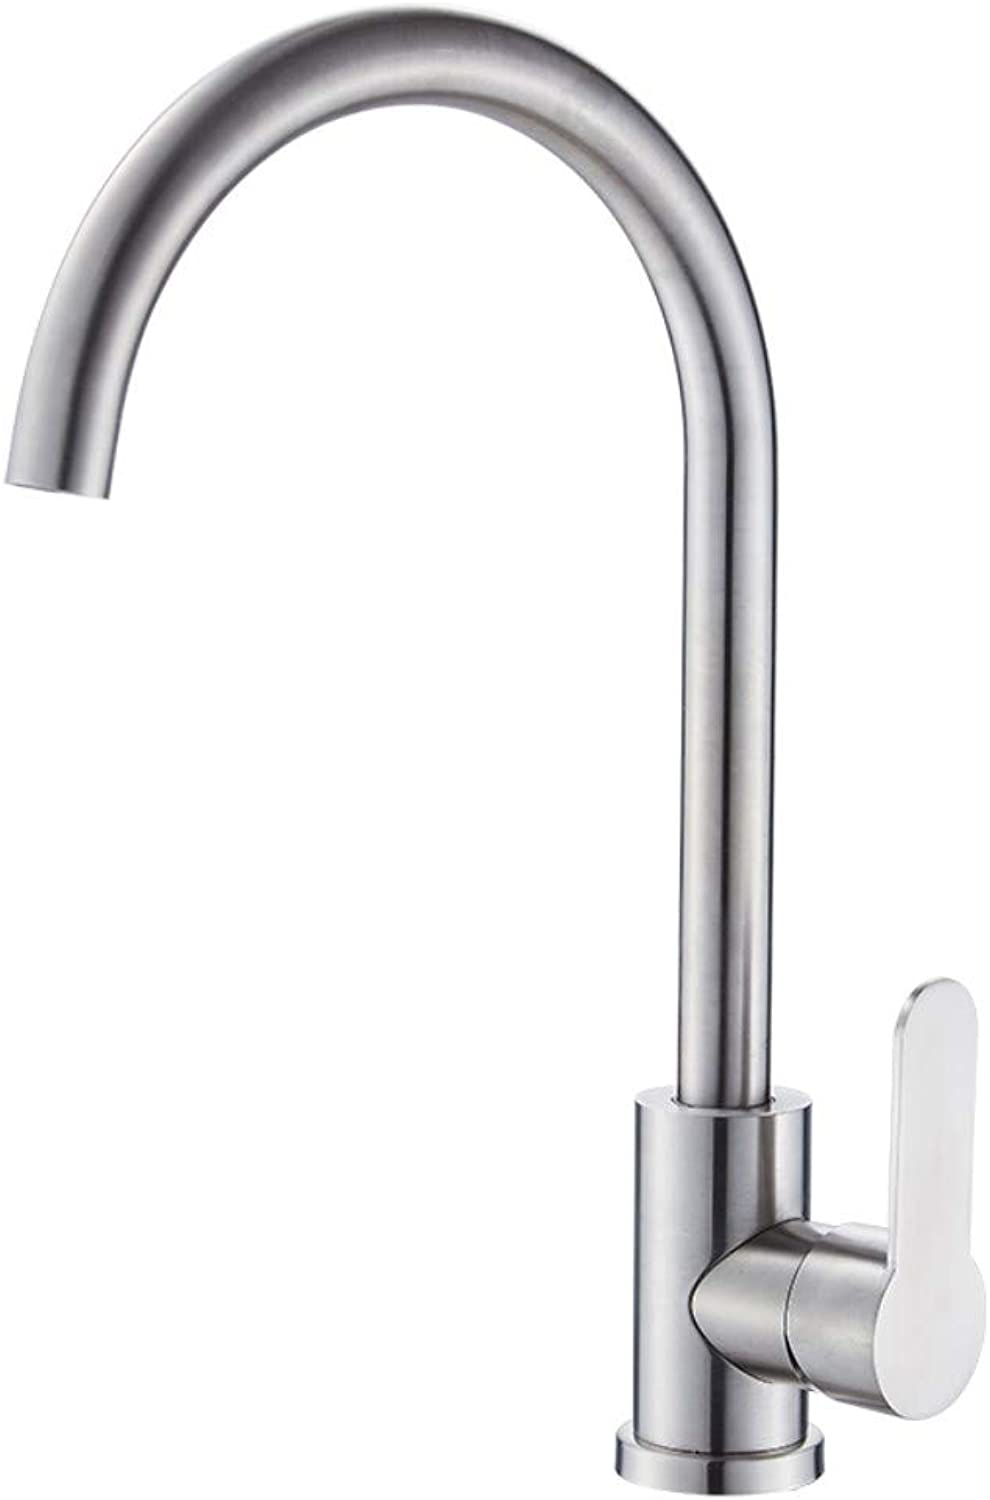 IBathUS Kitchen stainless steel hot and cold water faucet sink can be redated single hole single cold sink faucet home